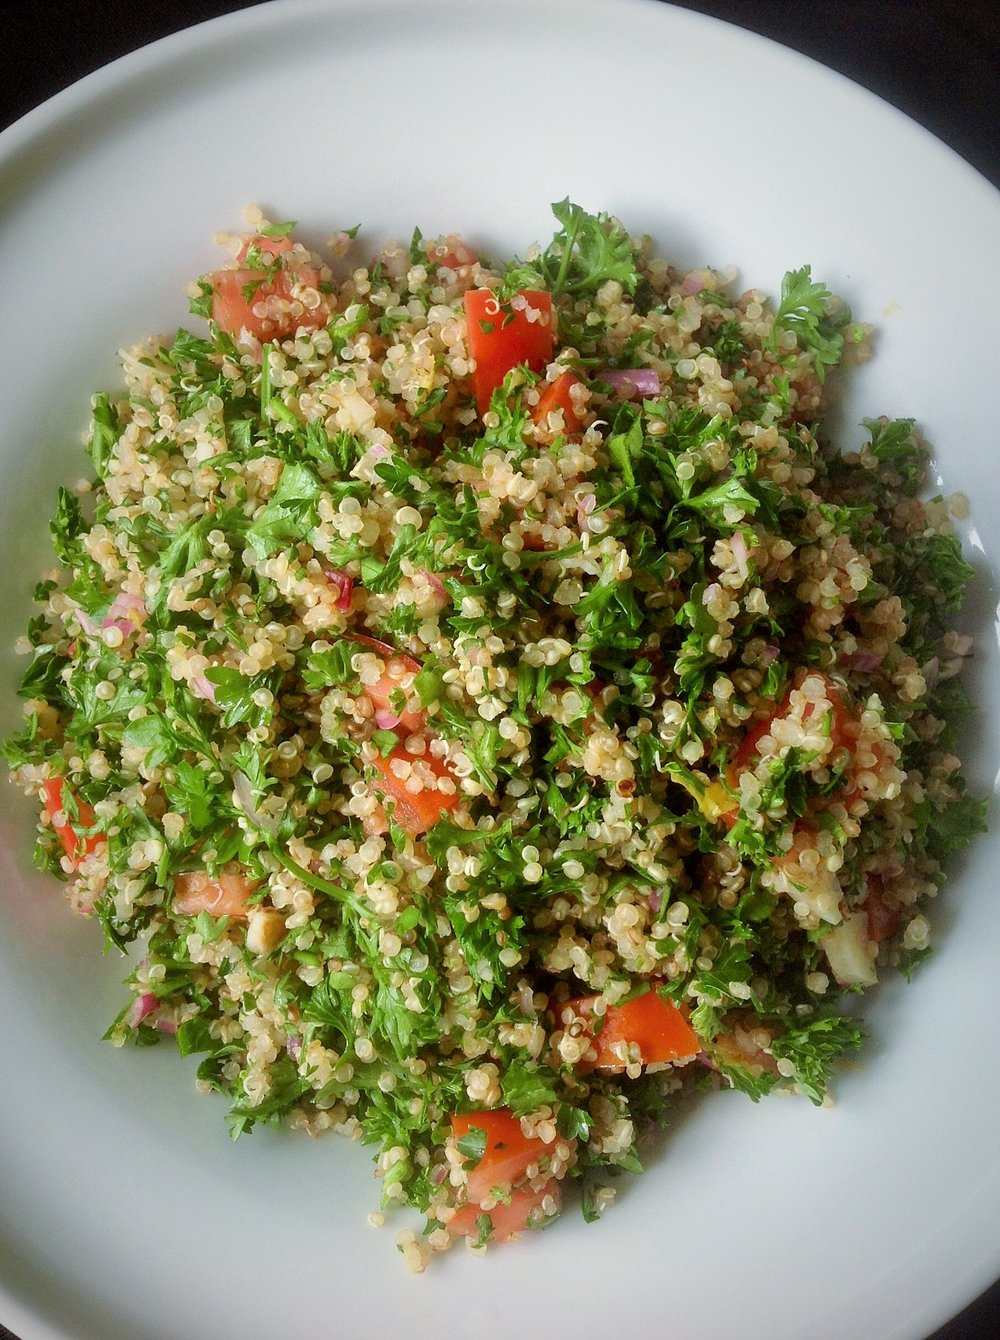 Quinoa Tabbouleh - Healthy, Gluten-Free, Oil-Free, Whole Grain, Vegetarian Protein, Plant-Based, Vegan Salad Recipe with Parsley, Sherry Vinegar